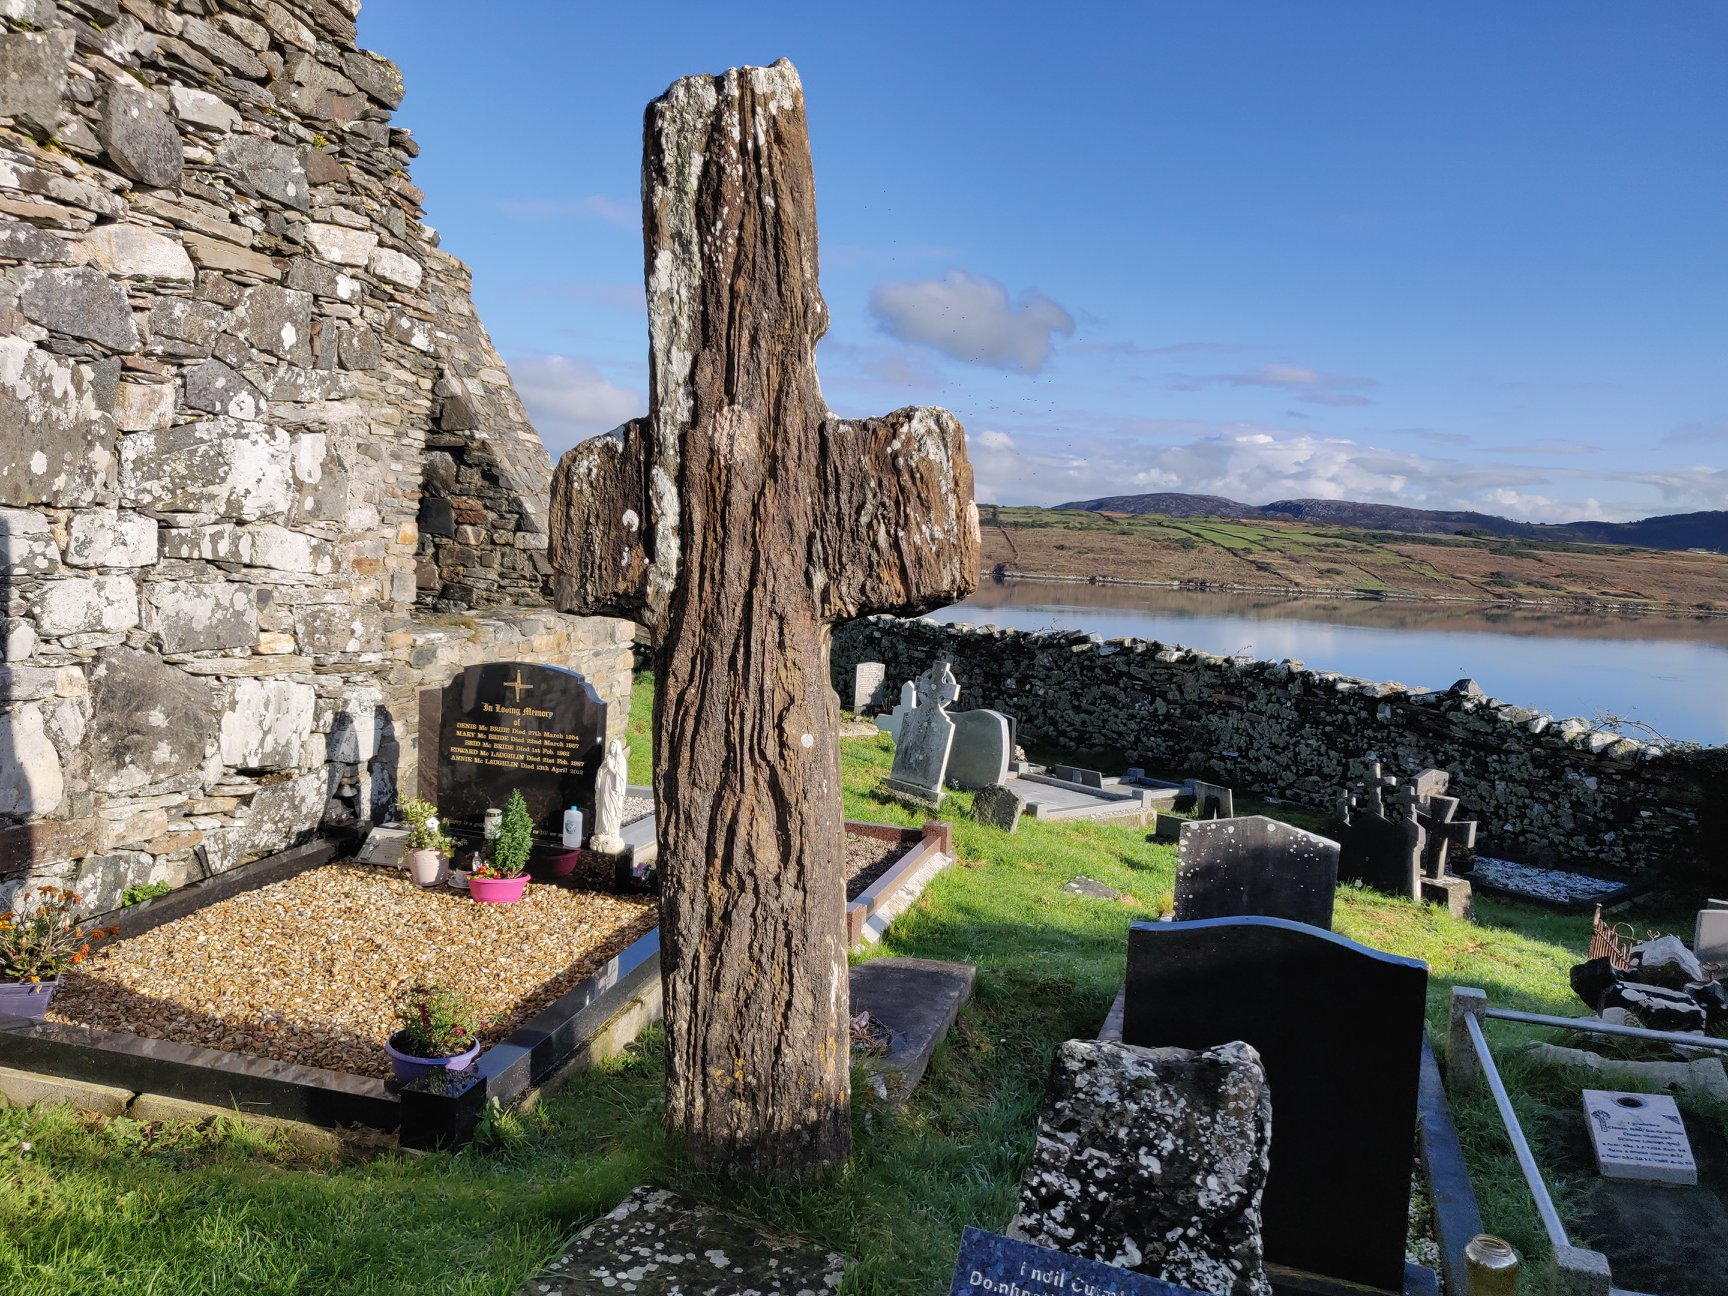 St Colm Cille Cross at Mevagh Graveyard